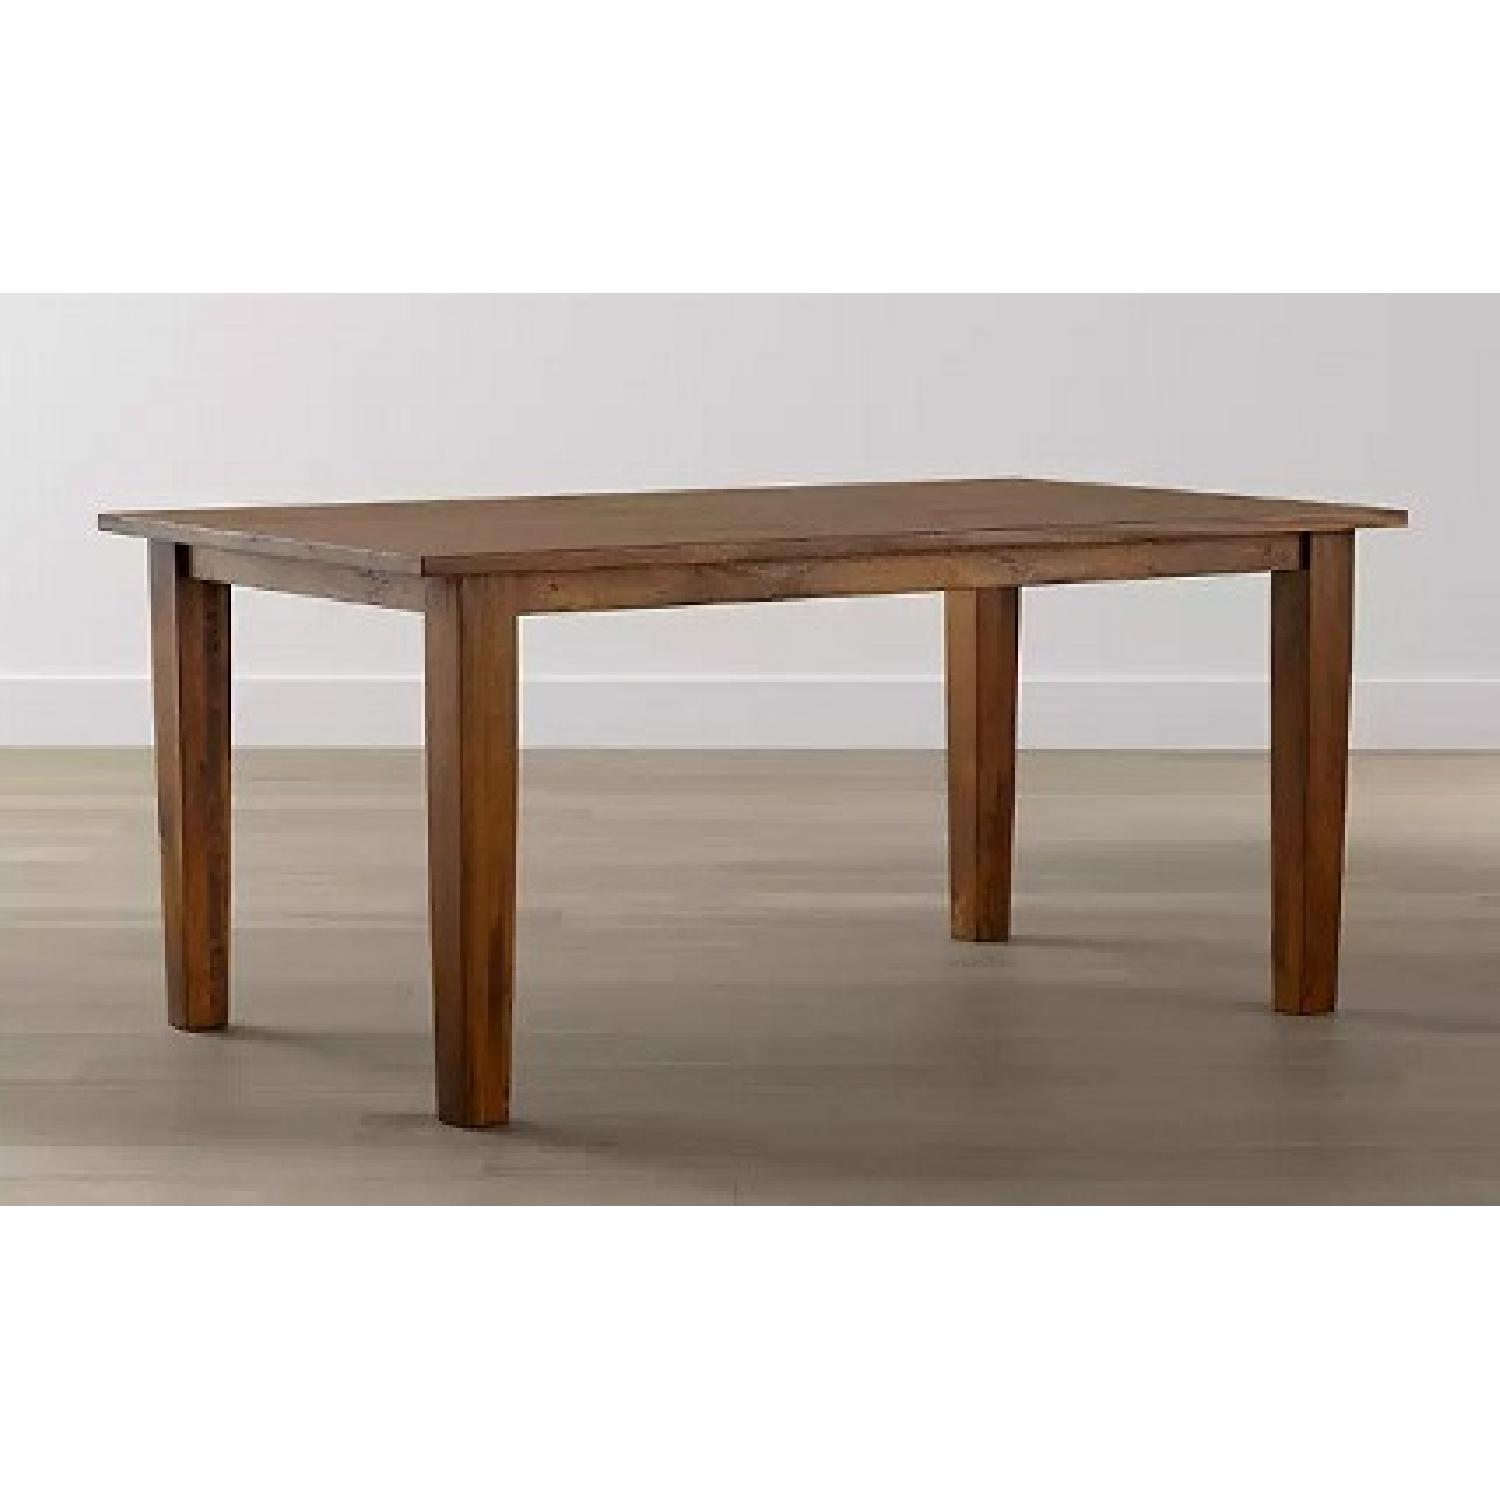 Crate and Barrel Basque Dining Table and 8 Chairs - image-6